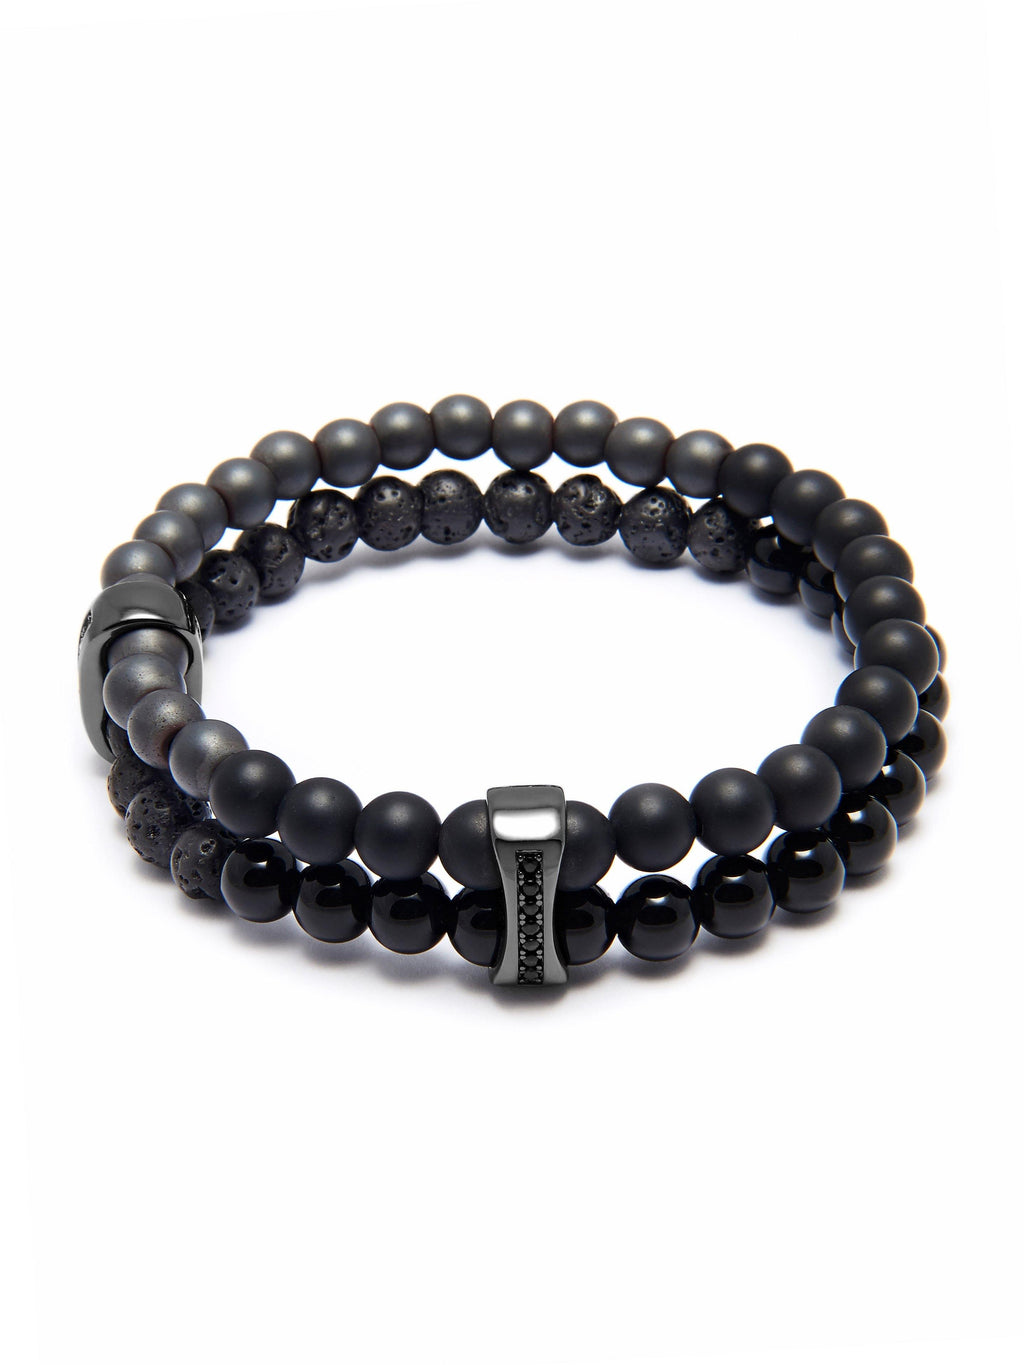 Men's Double Bead Wristband with Matte Onyx, Agate, Lava Stone, and Black Ruthenium Chakra Beads.